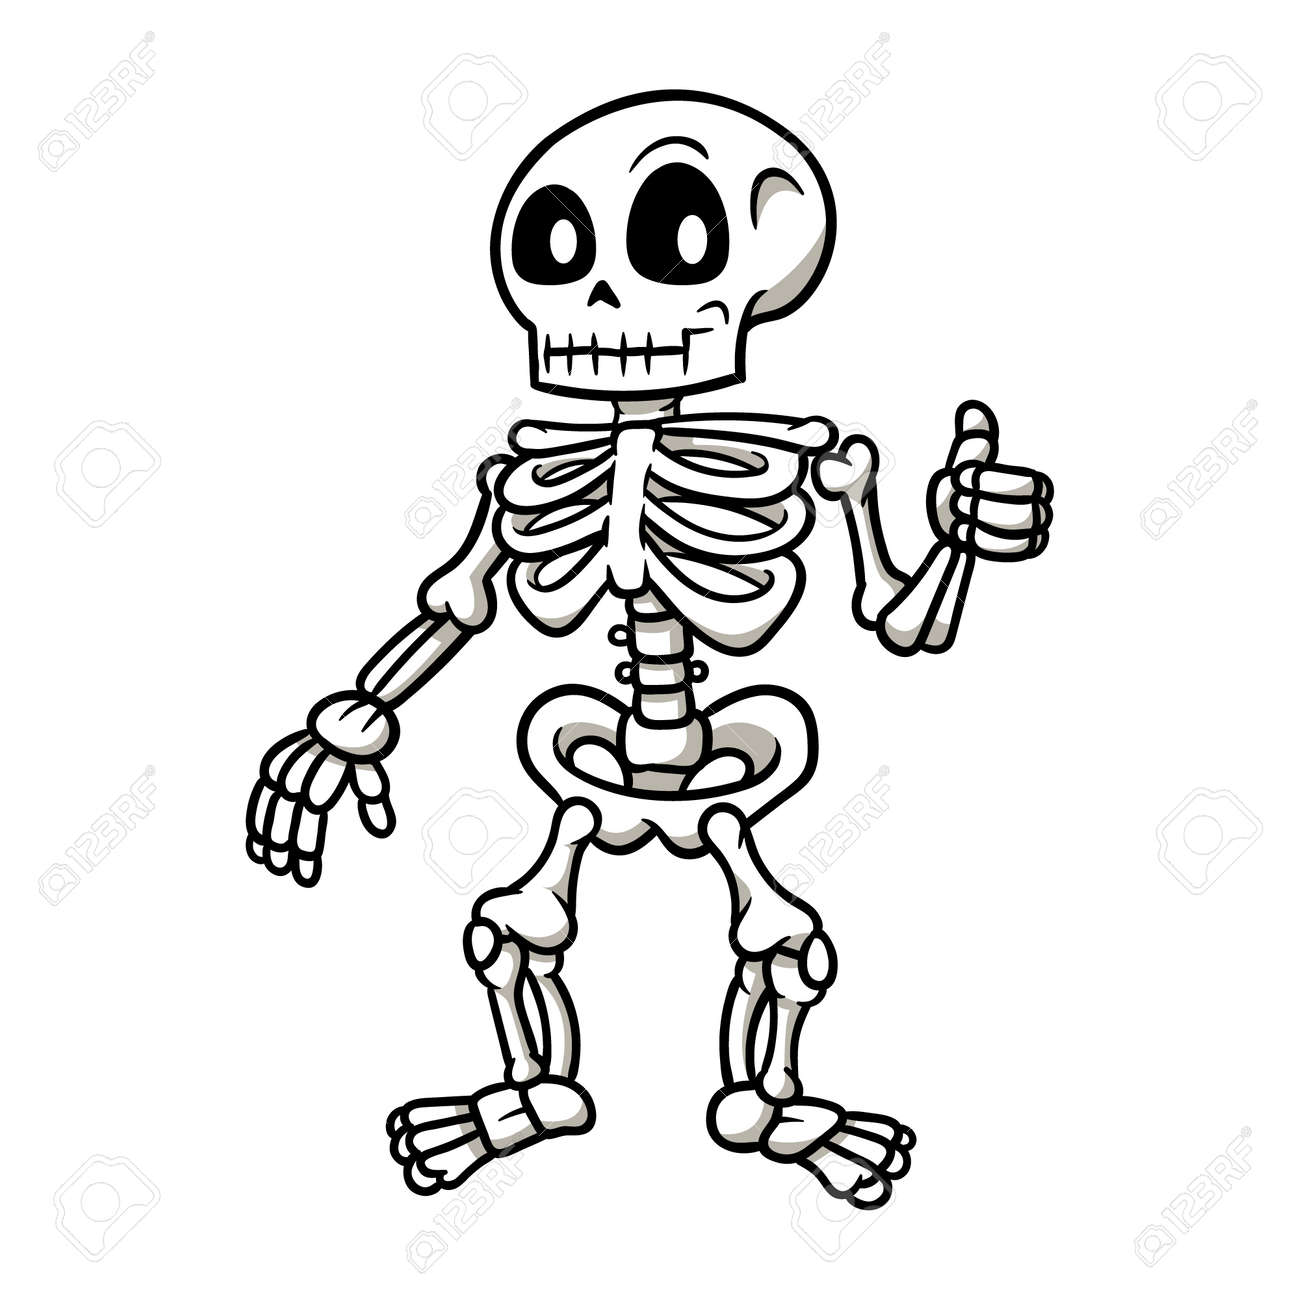 Cartoon Skeleton Giving a Thumbs Up Vector Illustration - 71765873